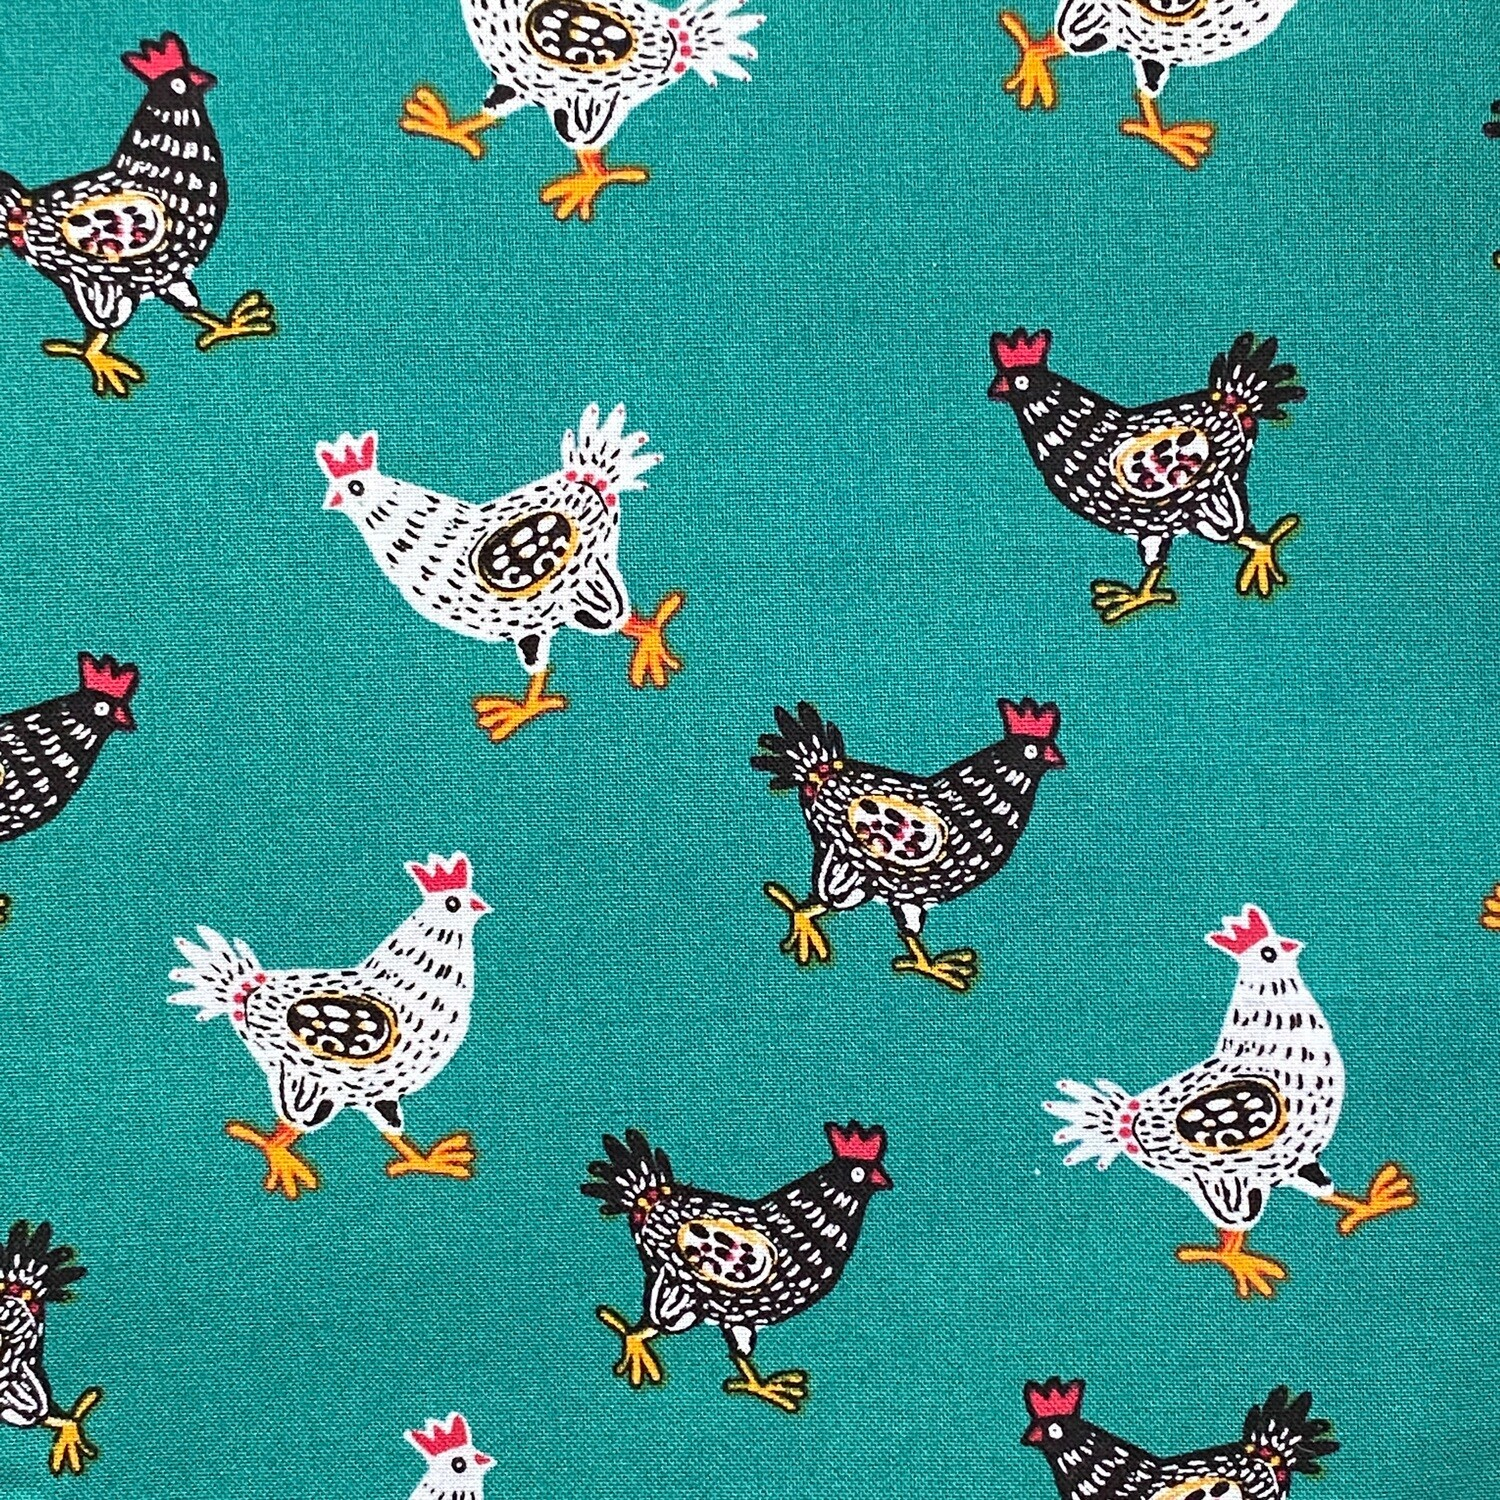 EasyFit Chickens on Dark Teal Reusable Cloth Face Mask